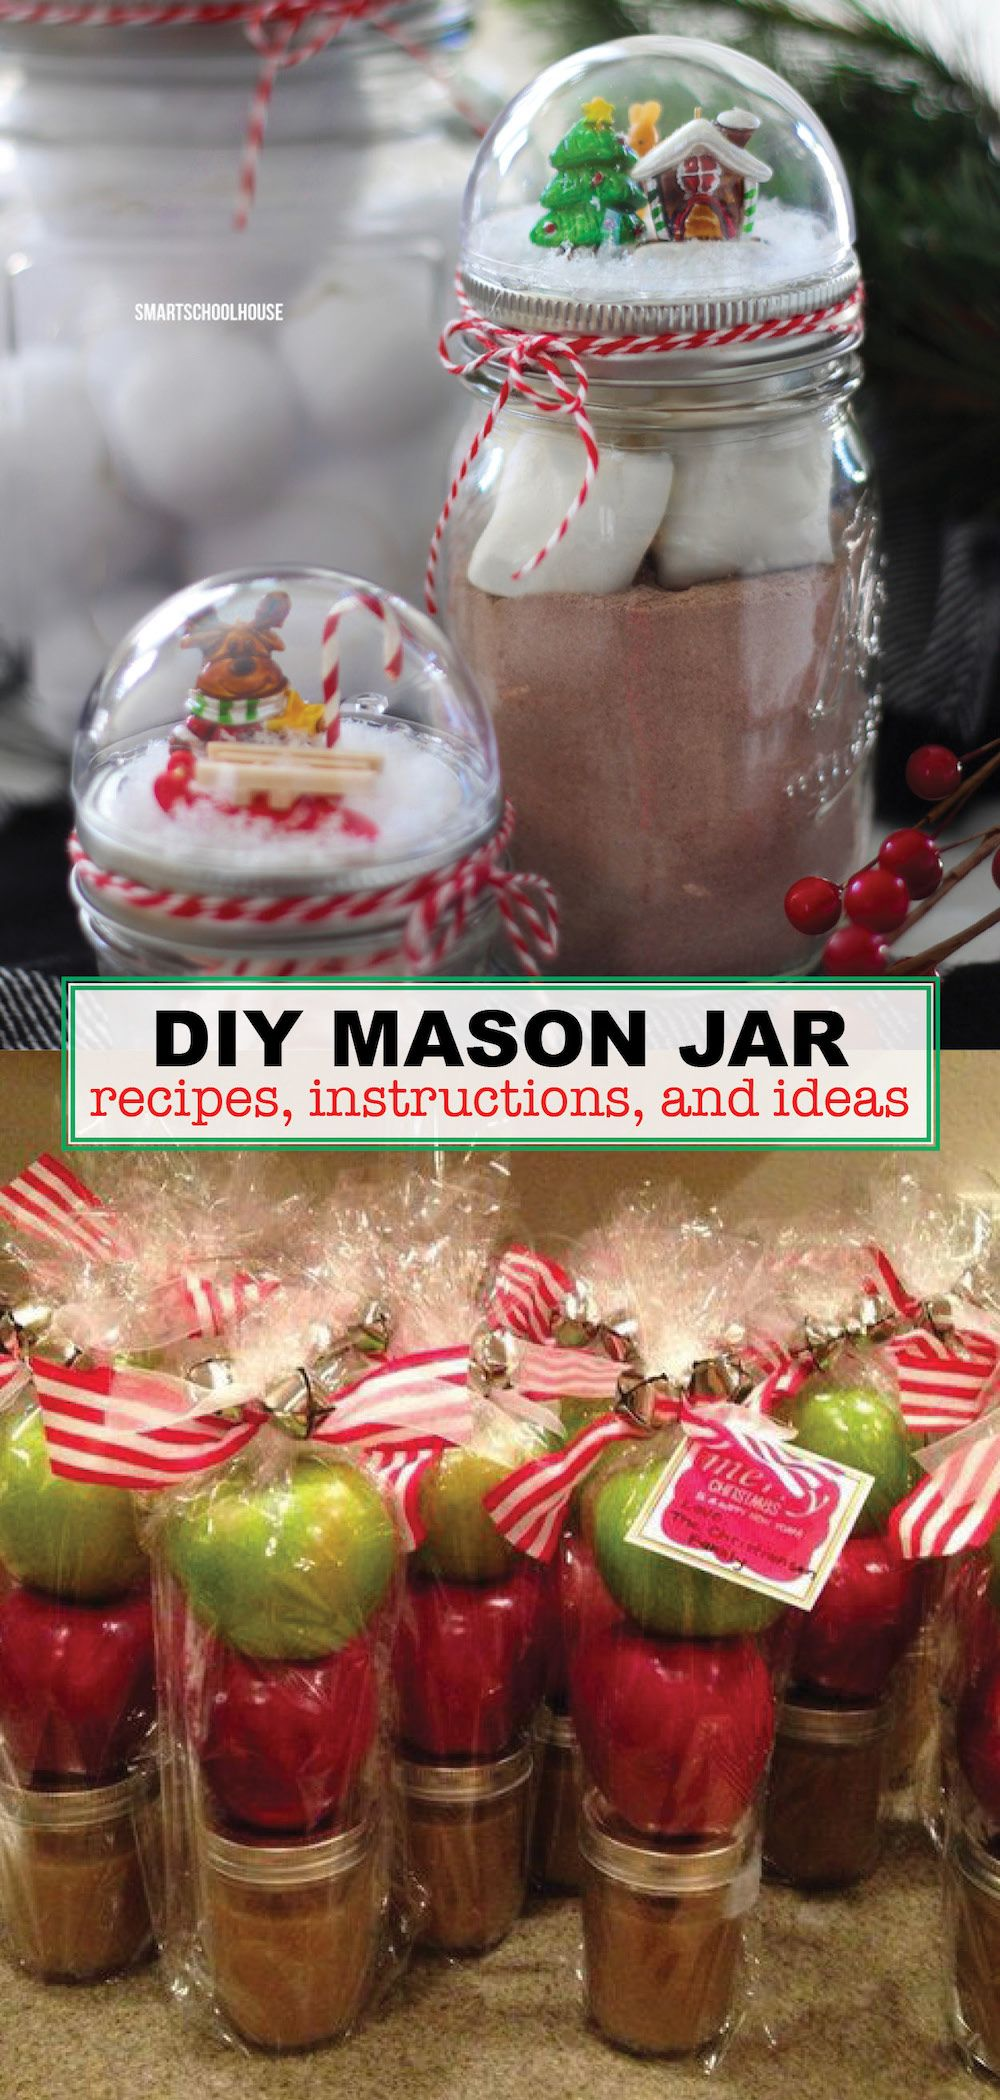 13 Easy Mason Jar Ideas #masonjarcrafts